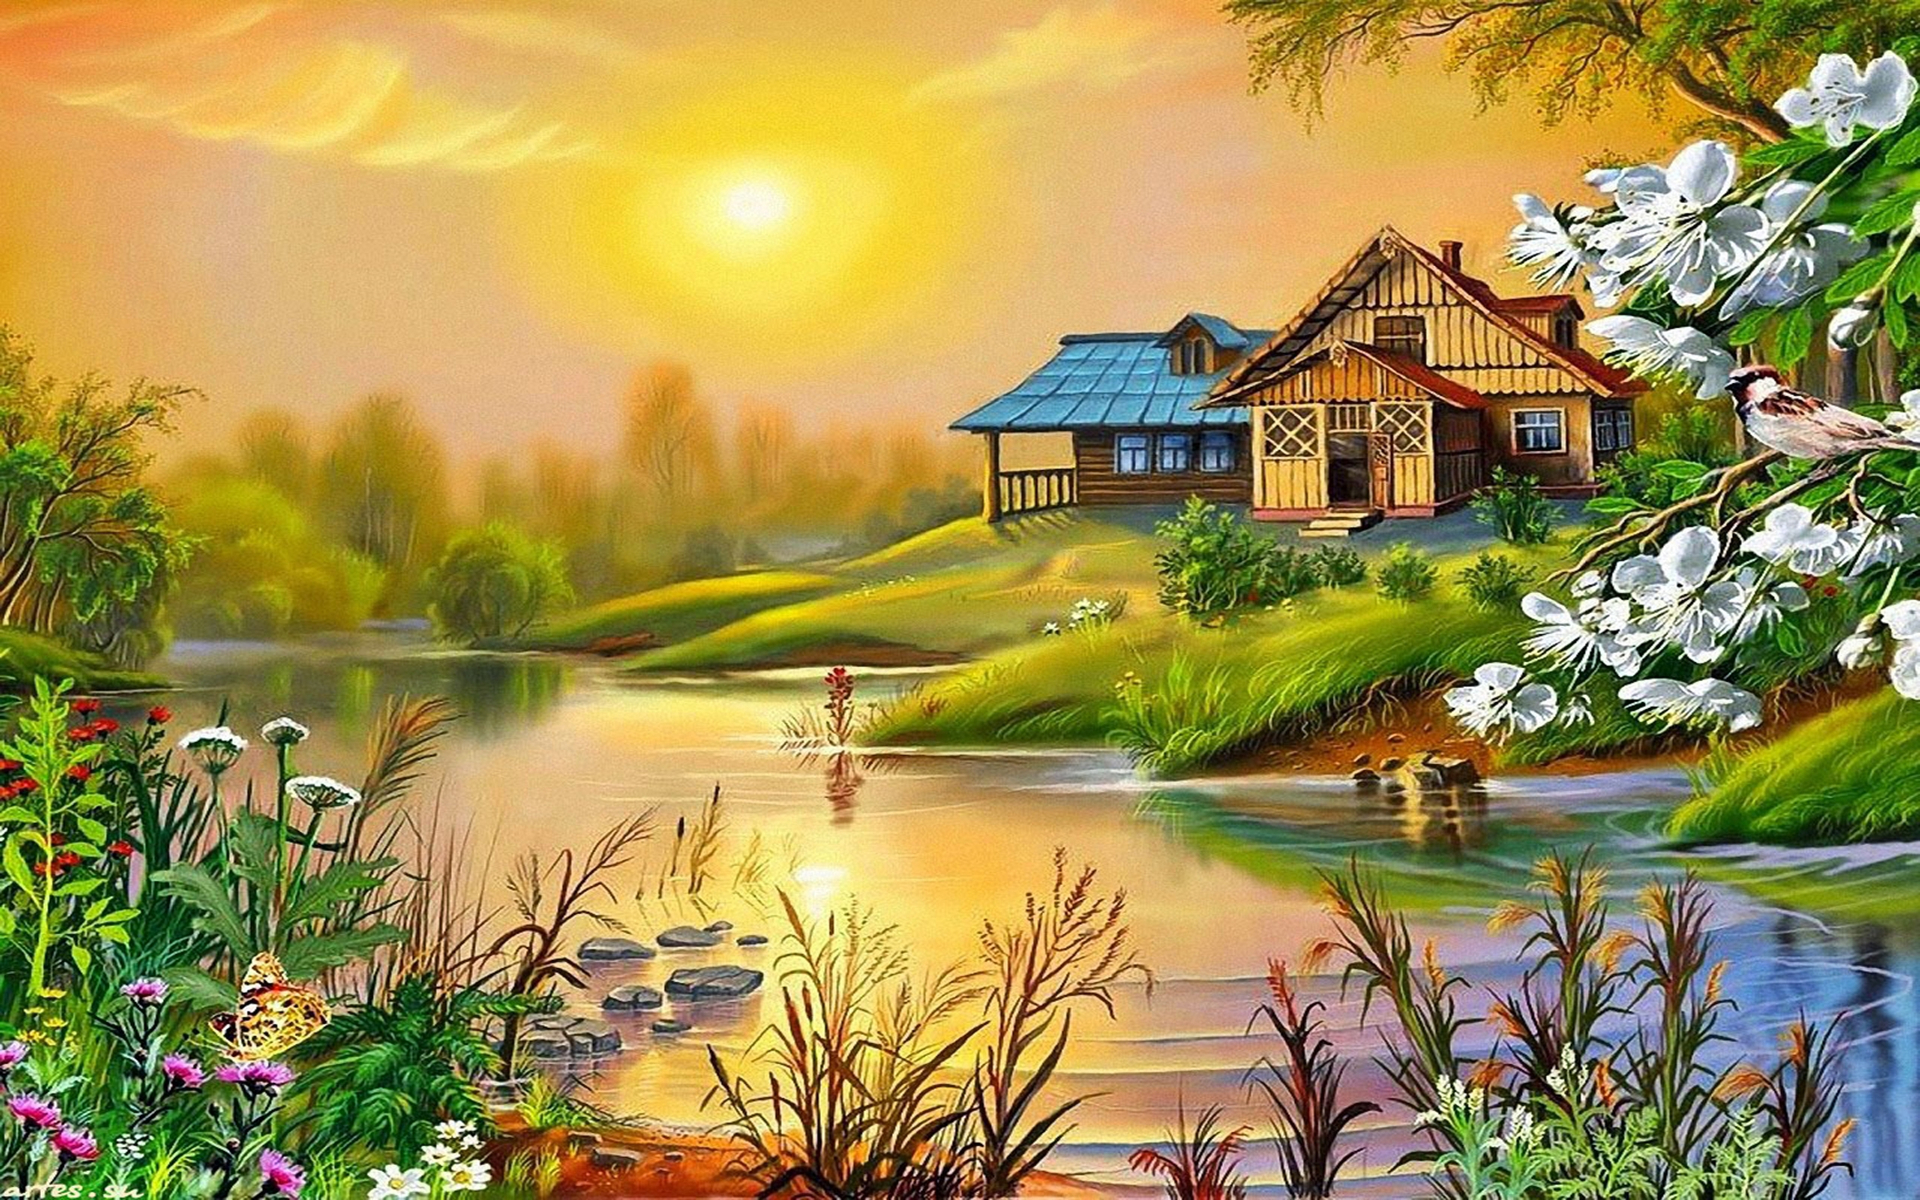 Haus am see wallpaper  House on the Lake Full HD Wallpaper and Hintergrund | 1920x1200 ...